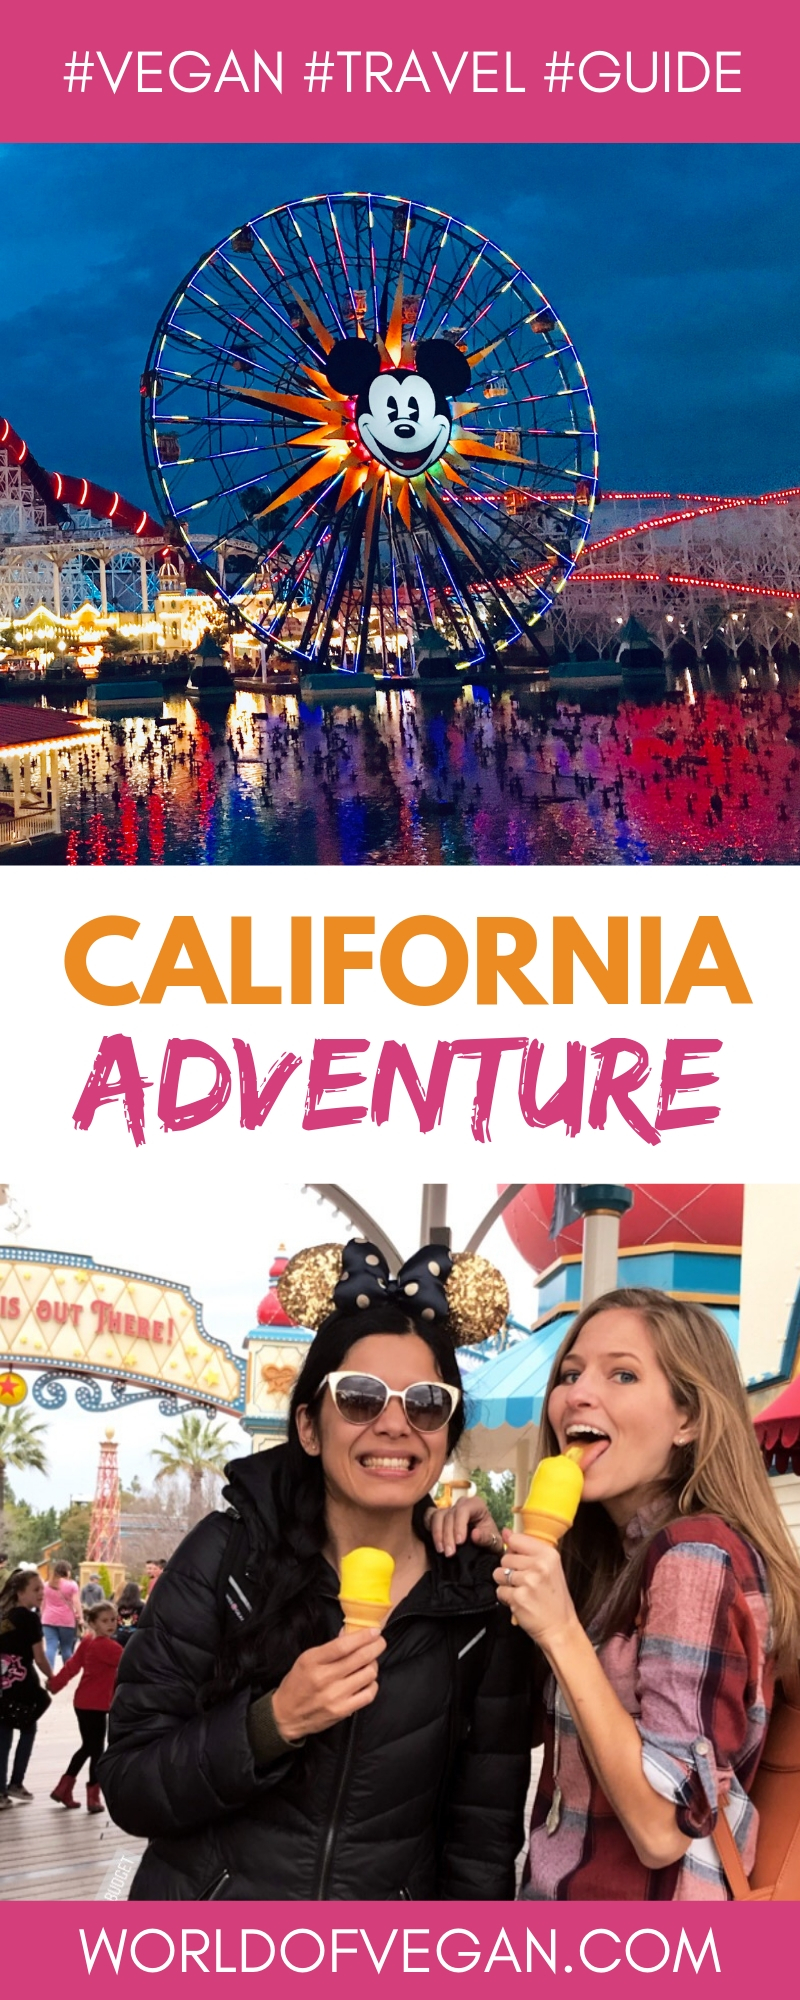 Vegan at Disney California Adventure | WorldofVegan.com #vegan #disney